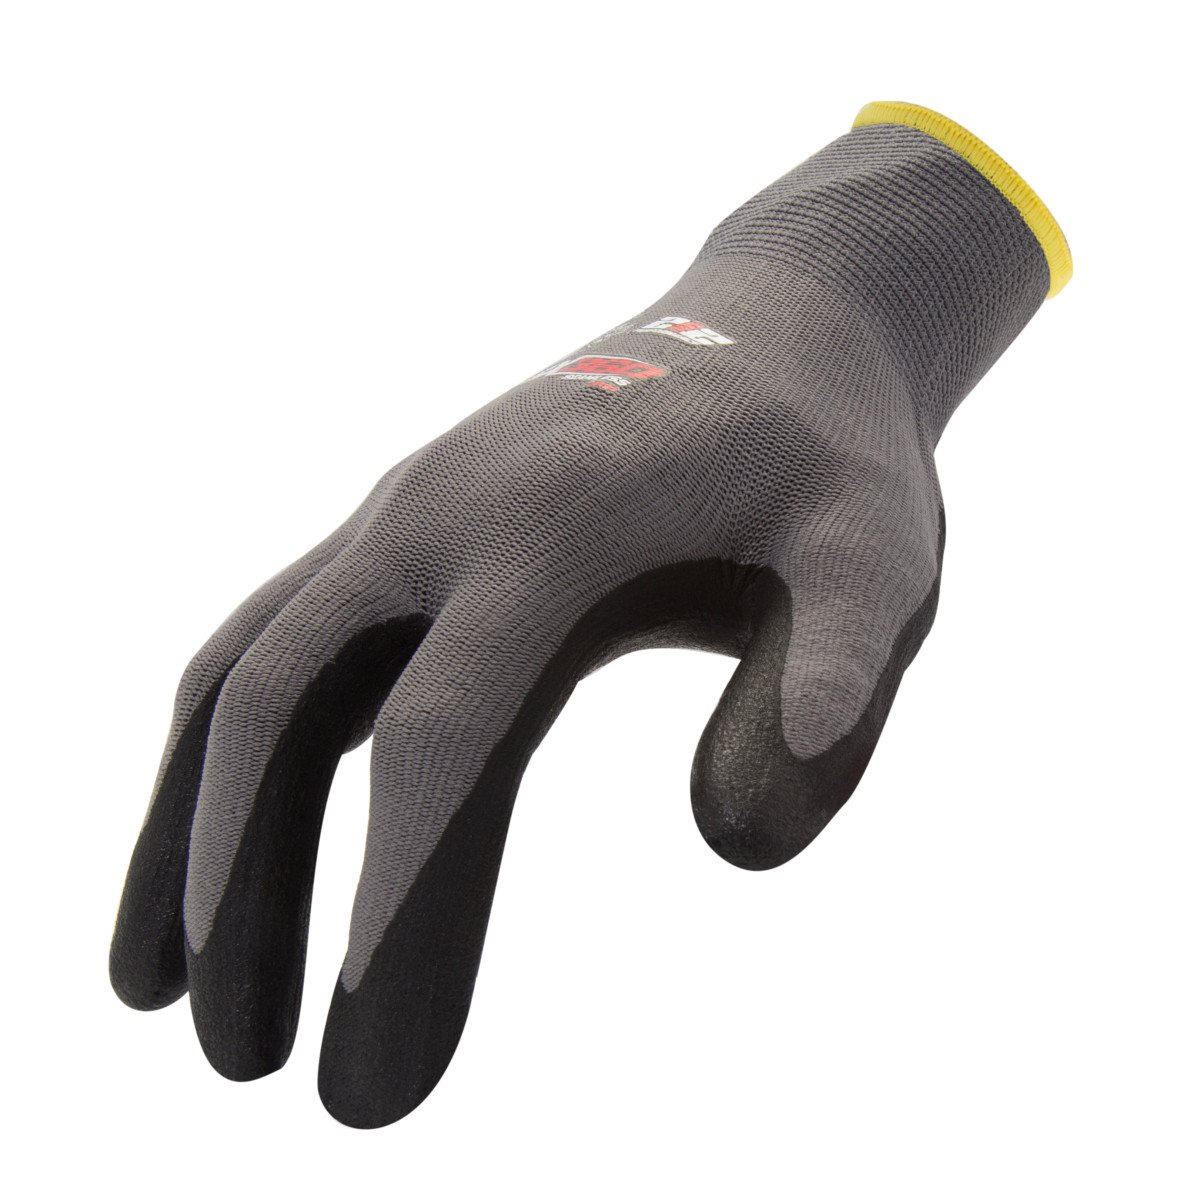 212 Performance Gloves AXG-16-010PR AX360 Foam Nitrile-dipped Grip Gloves, Large